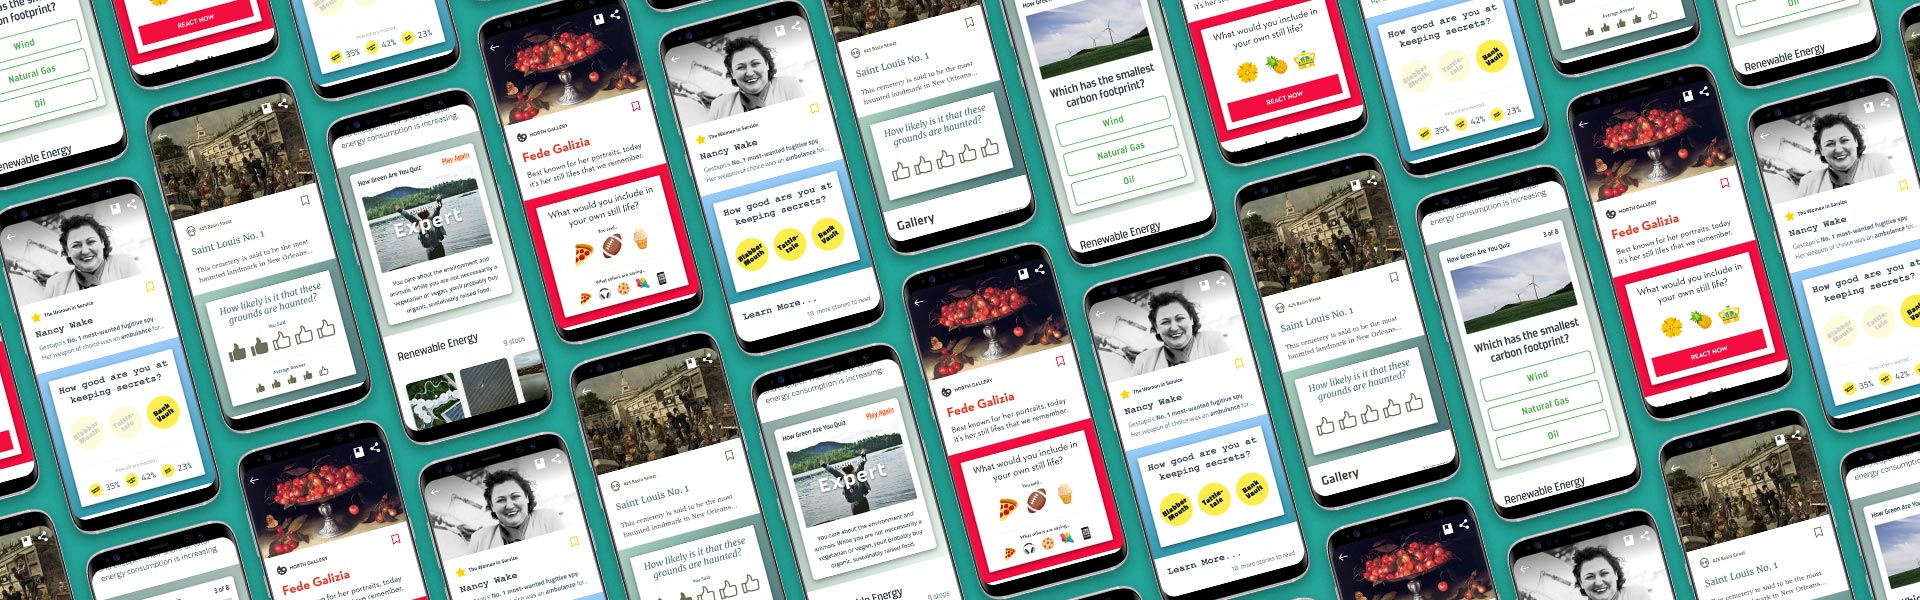 Rate, vote, emoji response, and personality quiz for museums